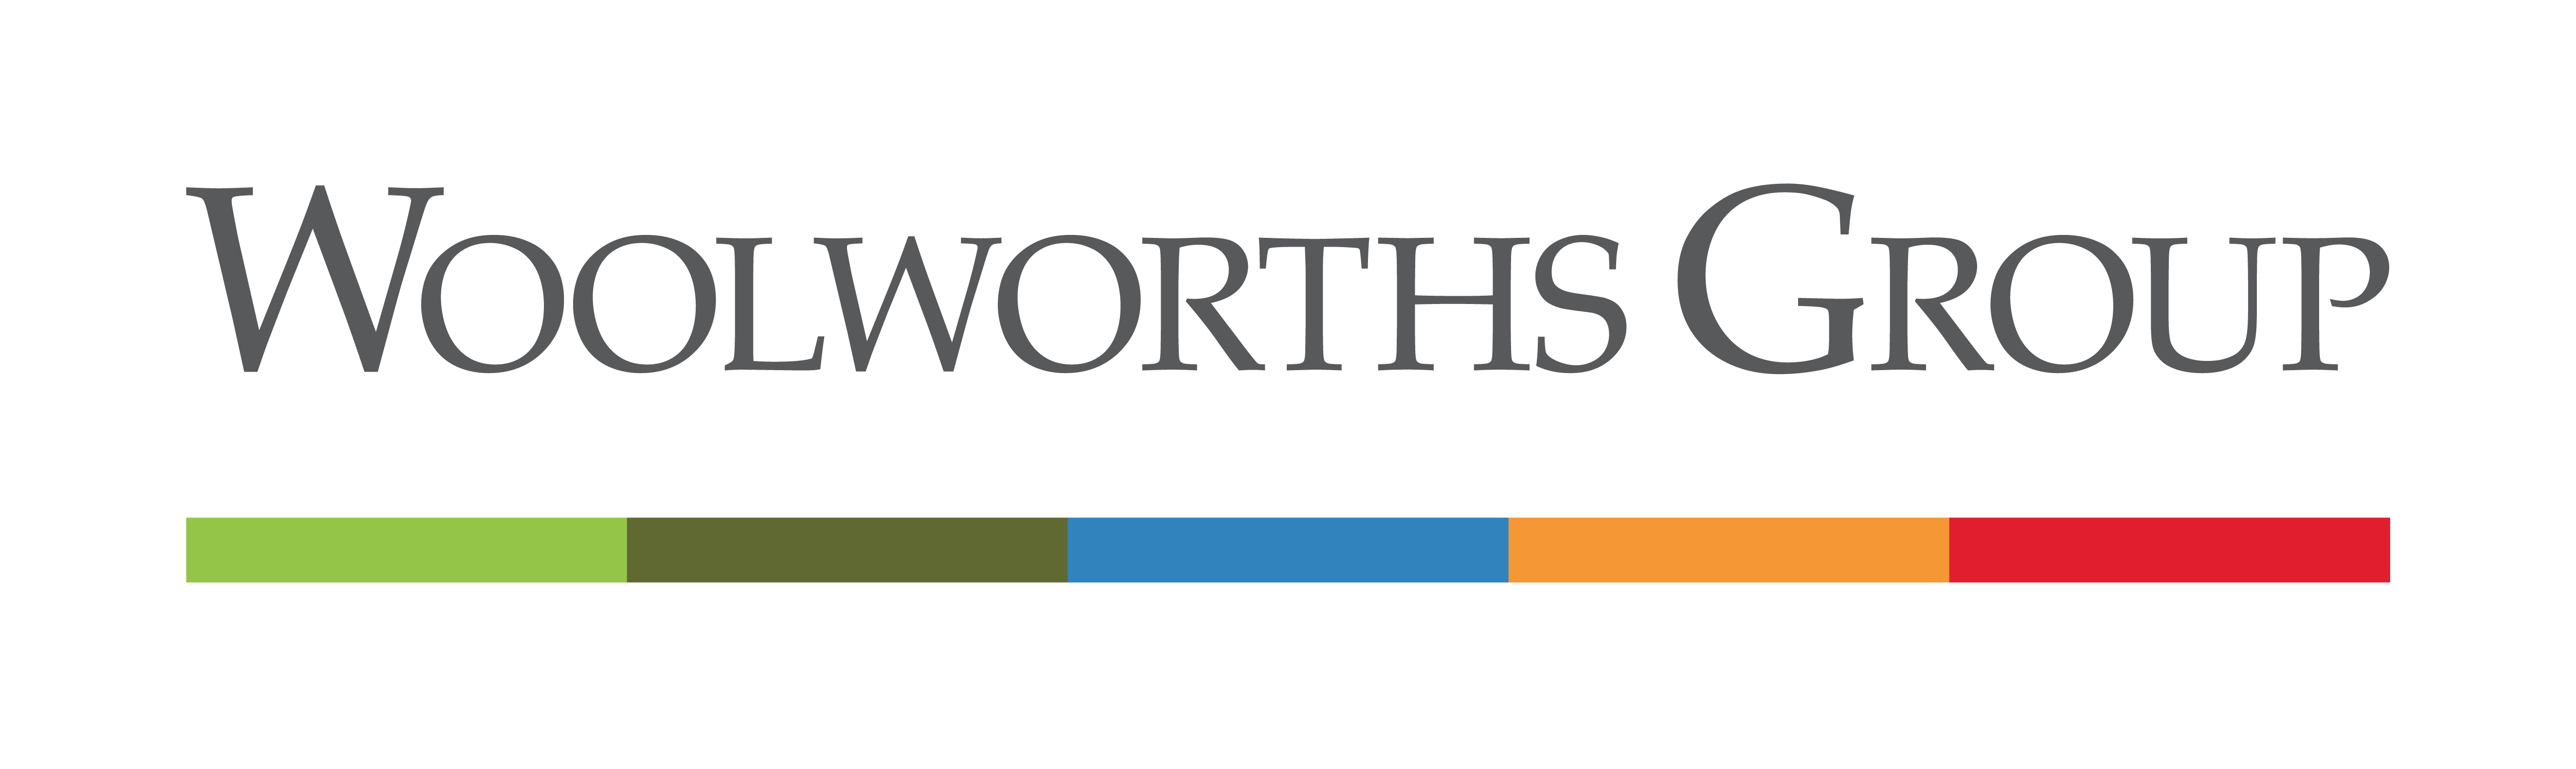 WOOLWORTHS GROUP LIMITED (WOW) Share Price & Information - ASX